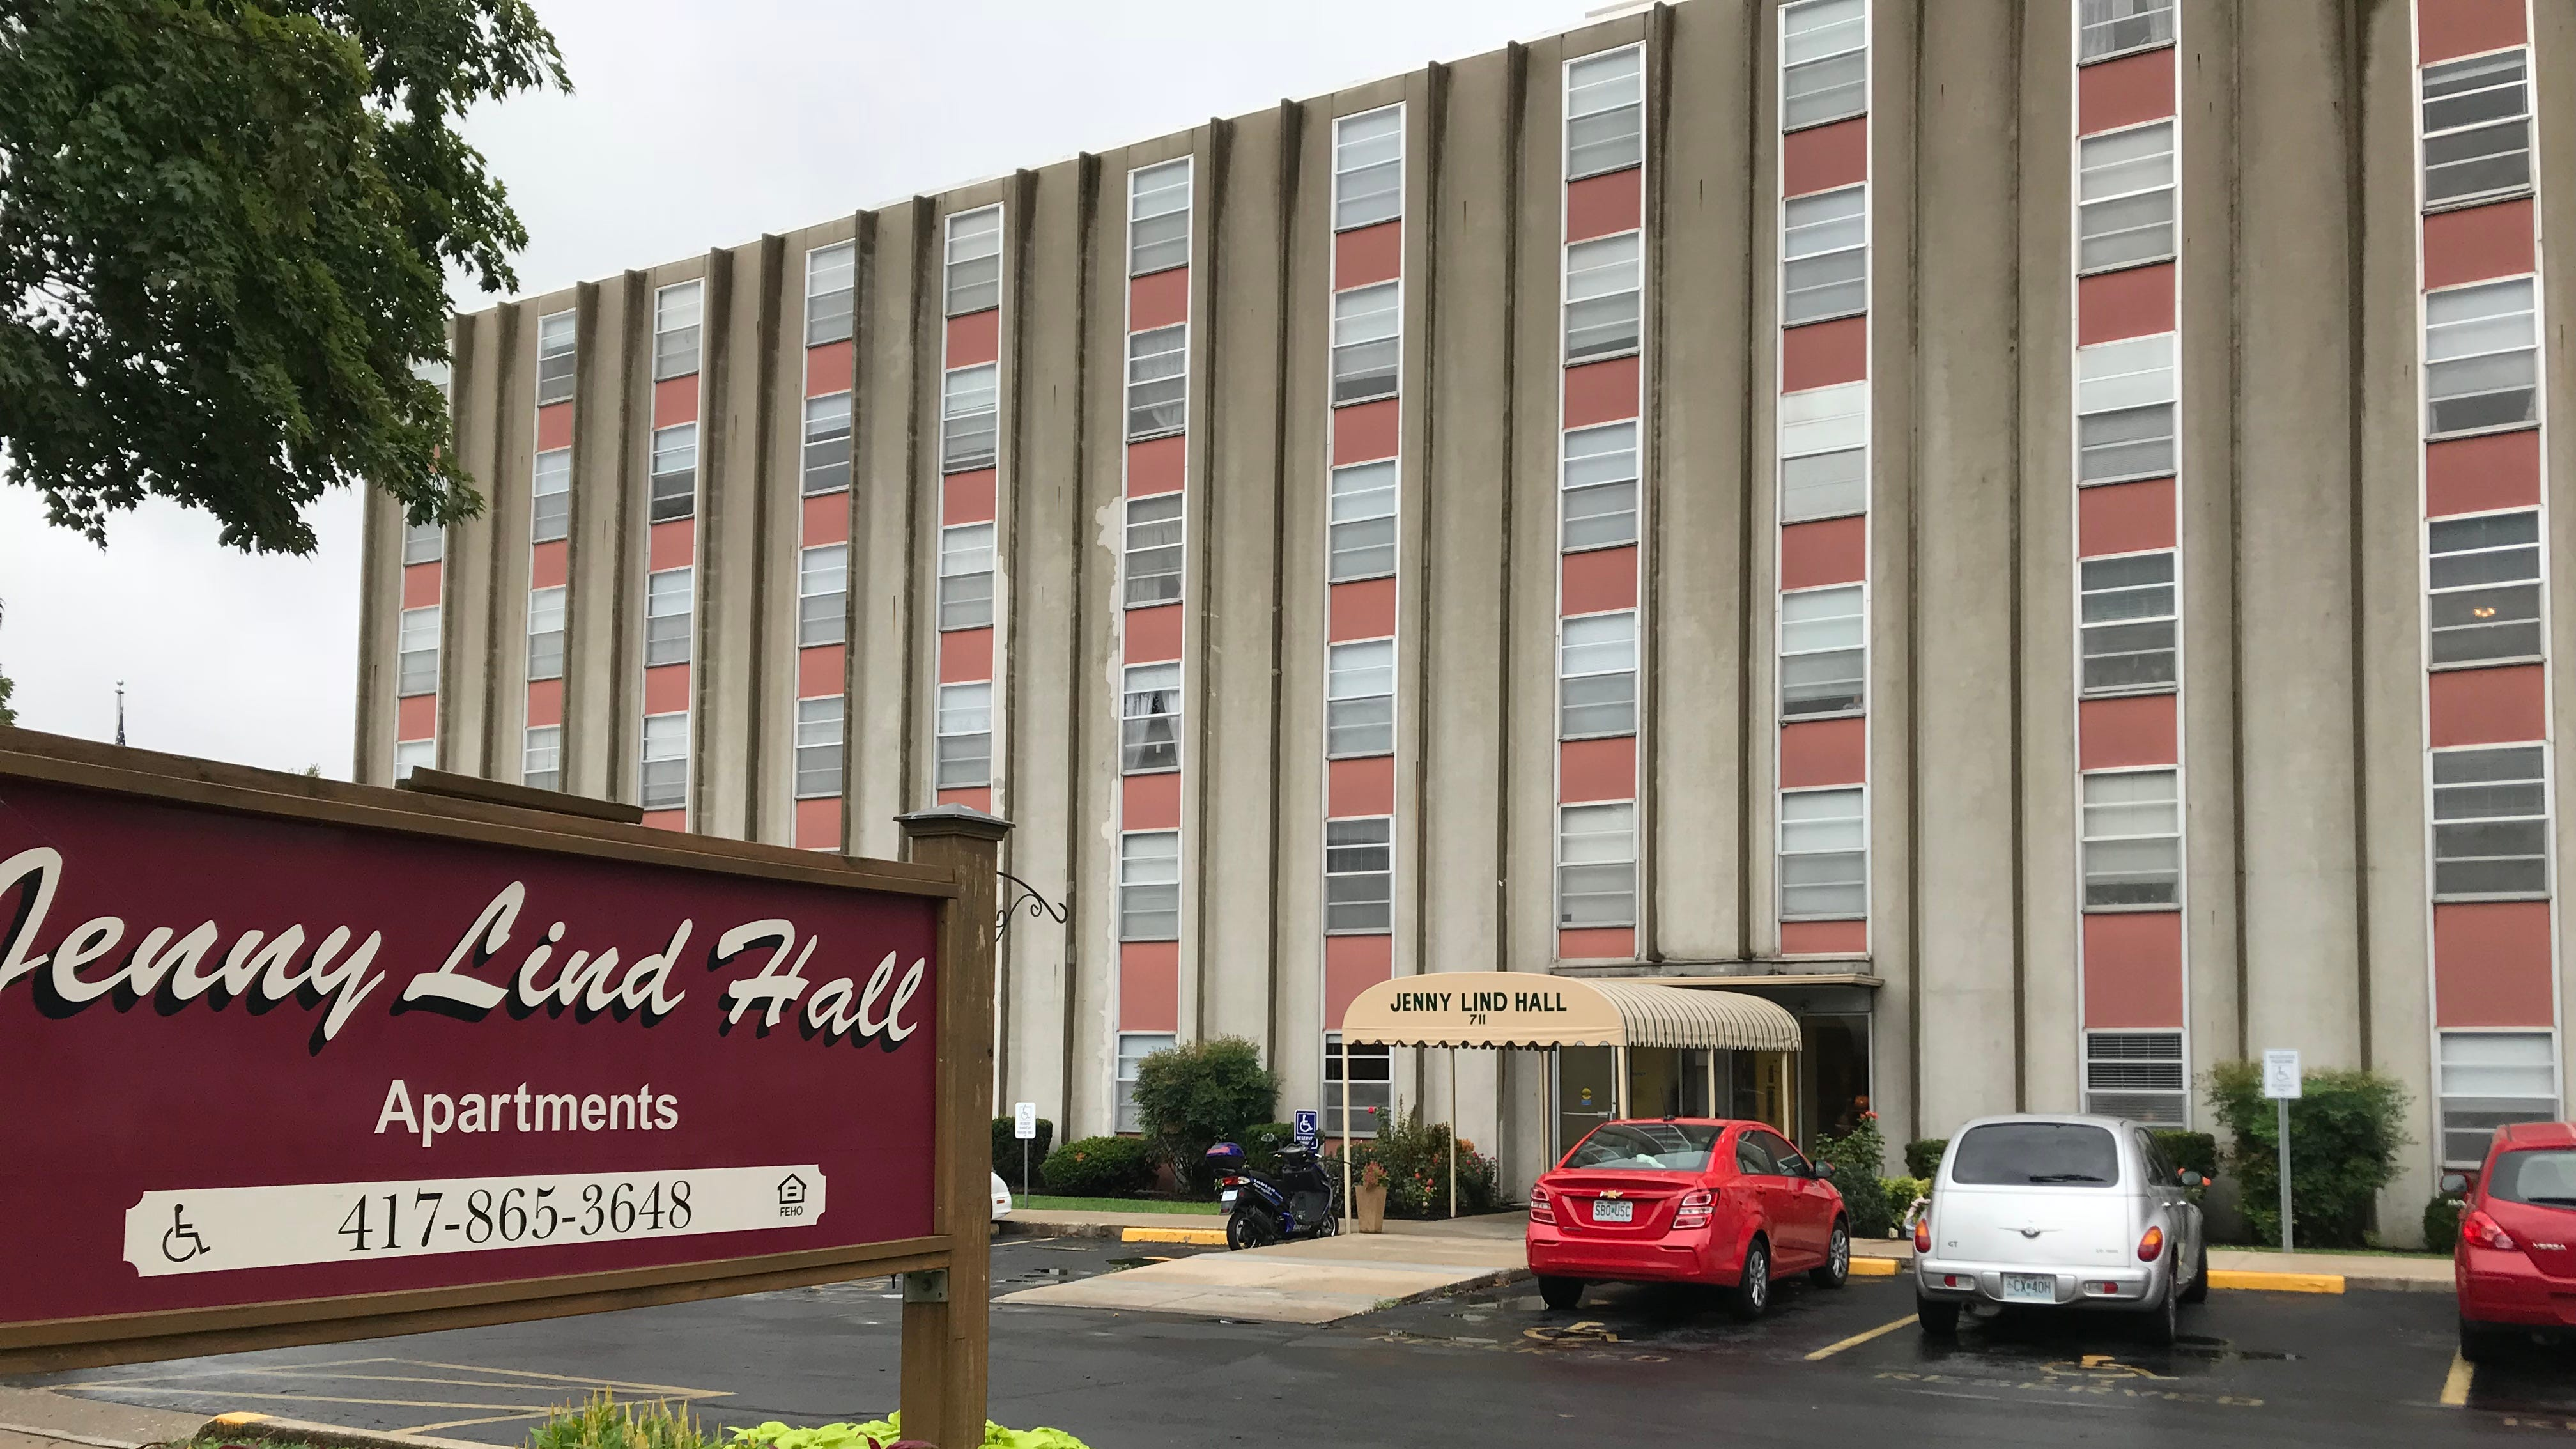 Jenny Lind Hall opened in 1977. It has 78 apartment units and is for those 62 and older or who are 18 and older and disabled.